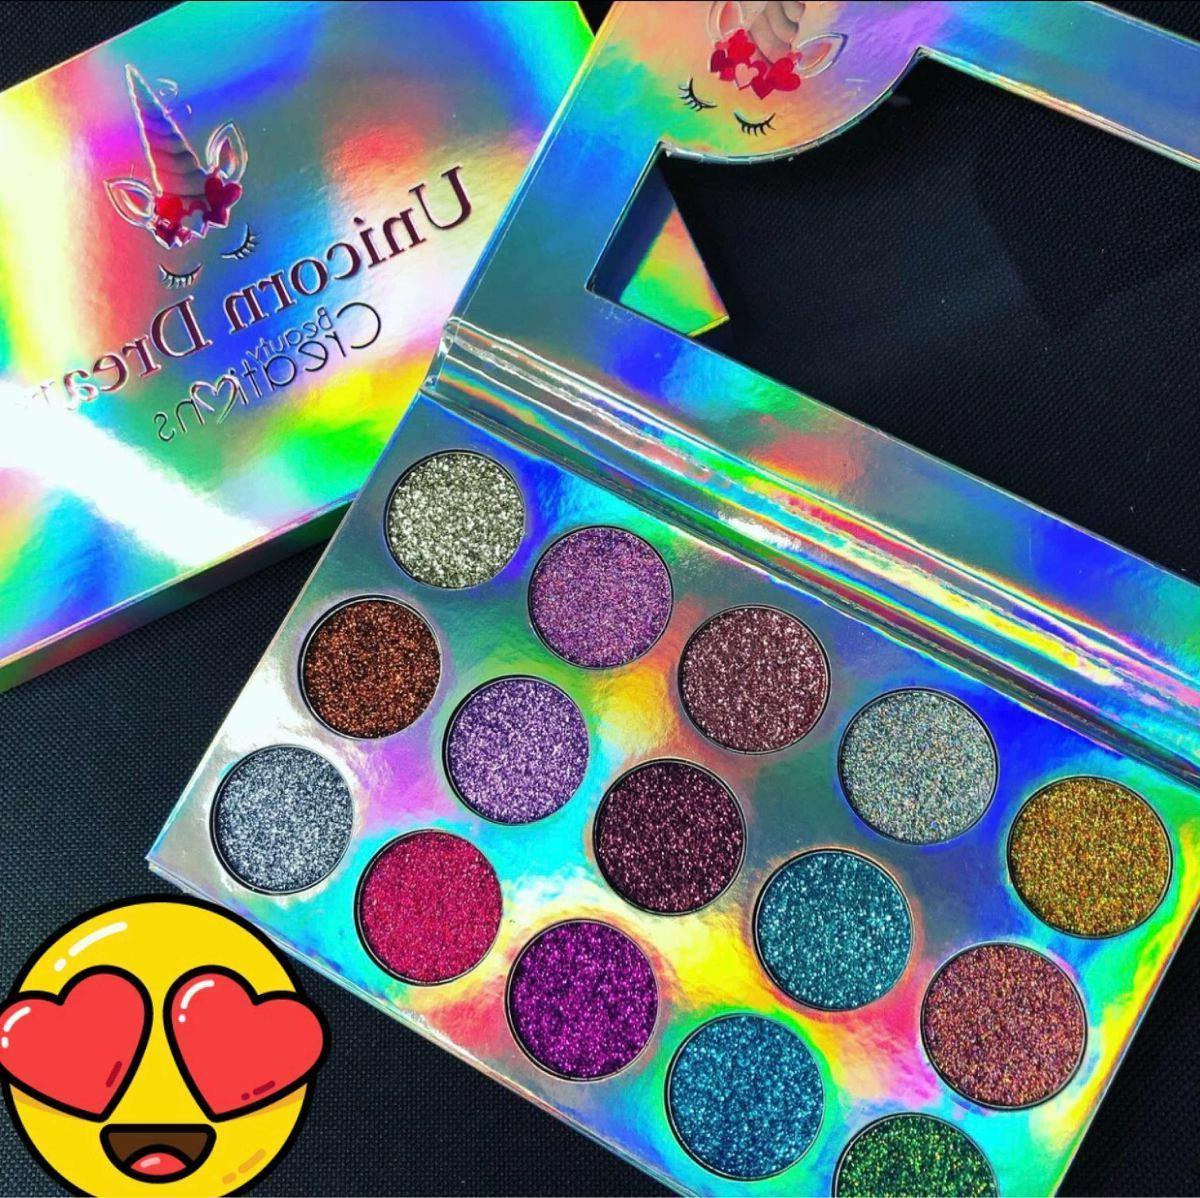 BEAUTY CREATIONS Palettes Glitters 15 shades